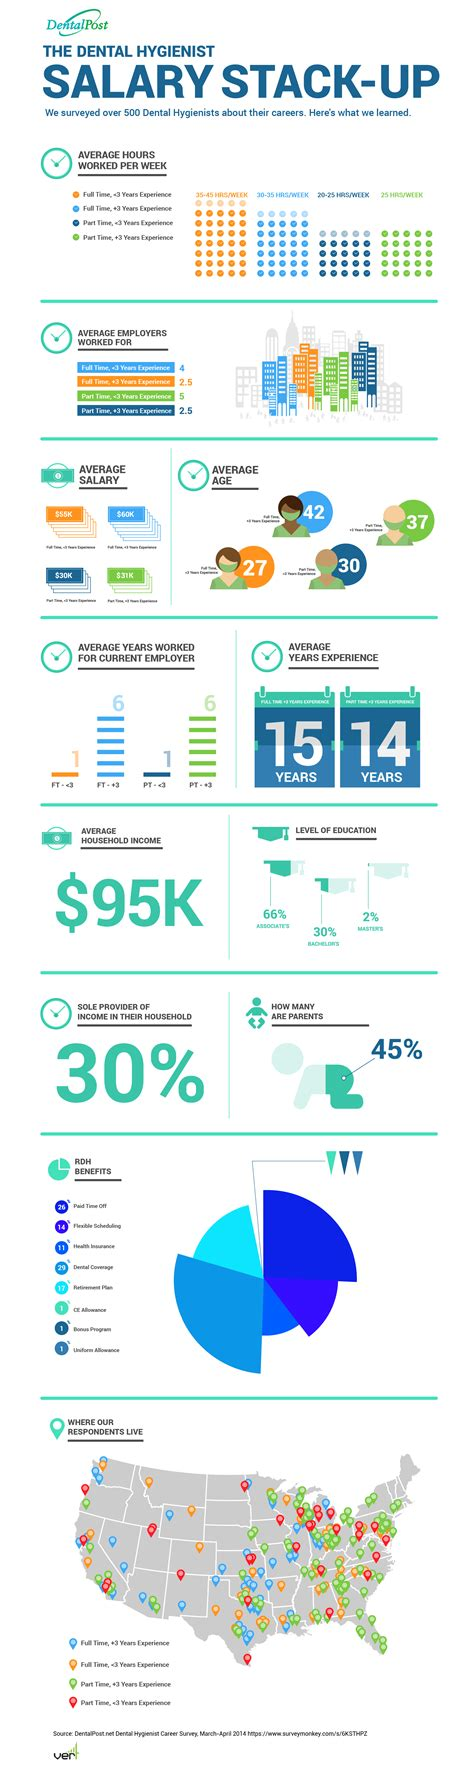 how does your dental hygienist salary stack up dentalpost